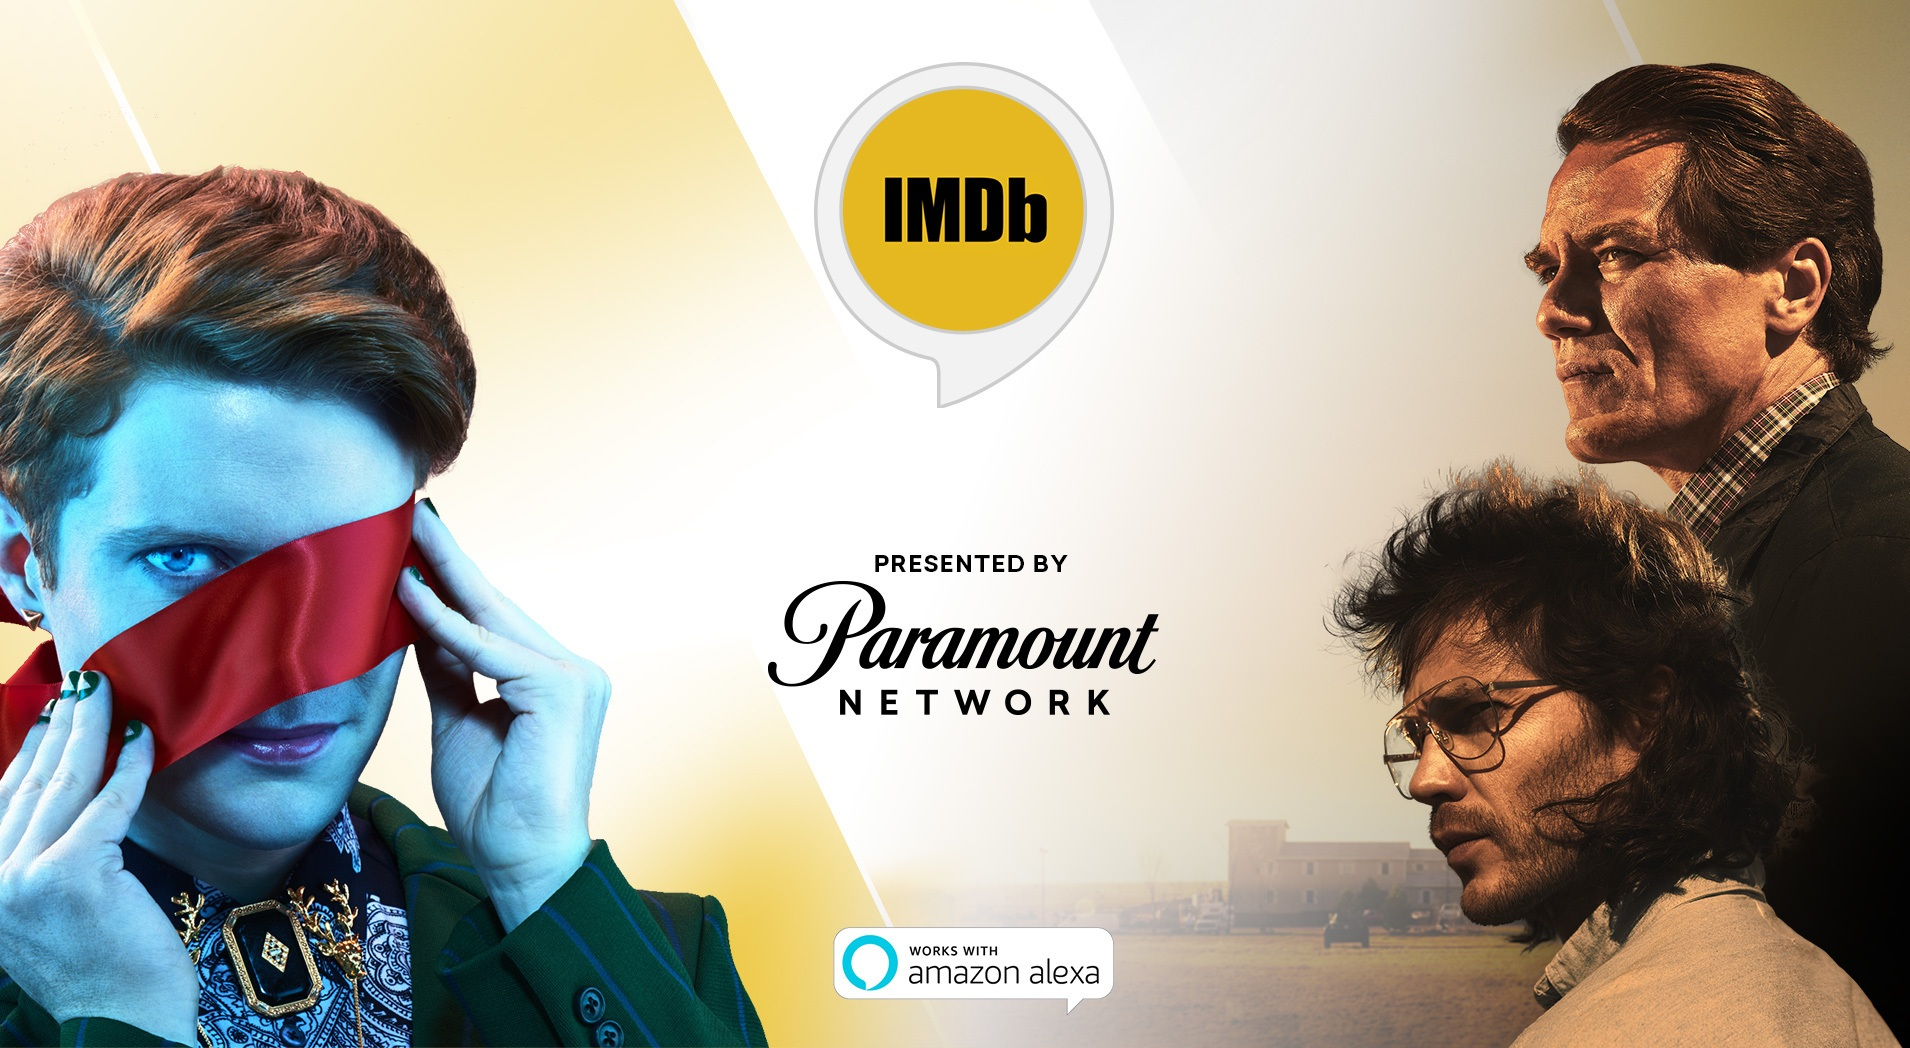 paramount network activate